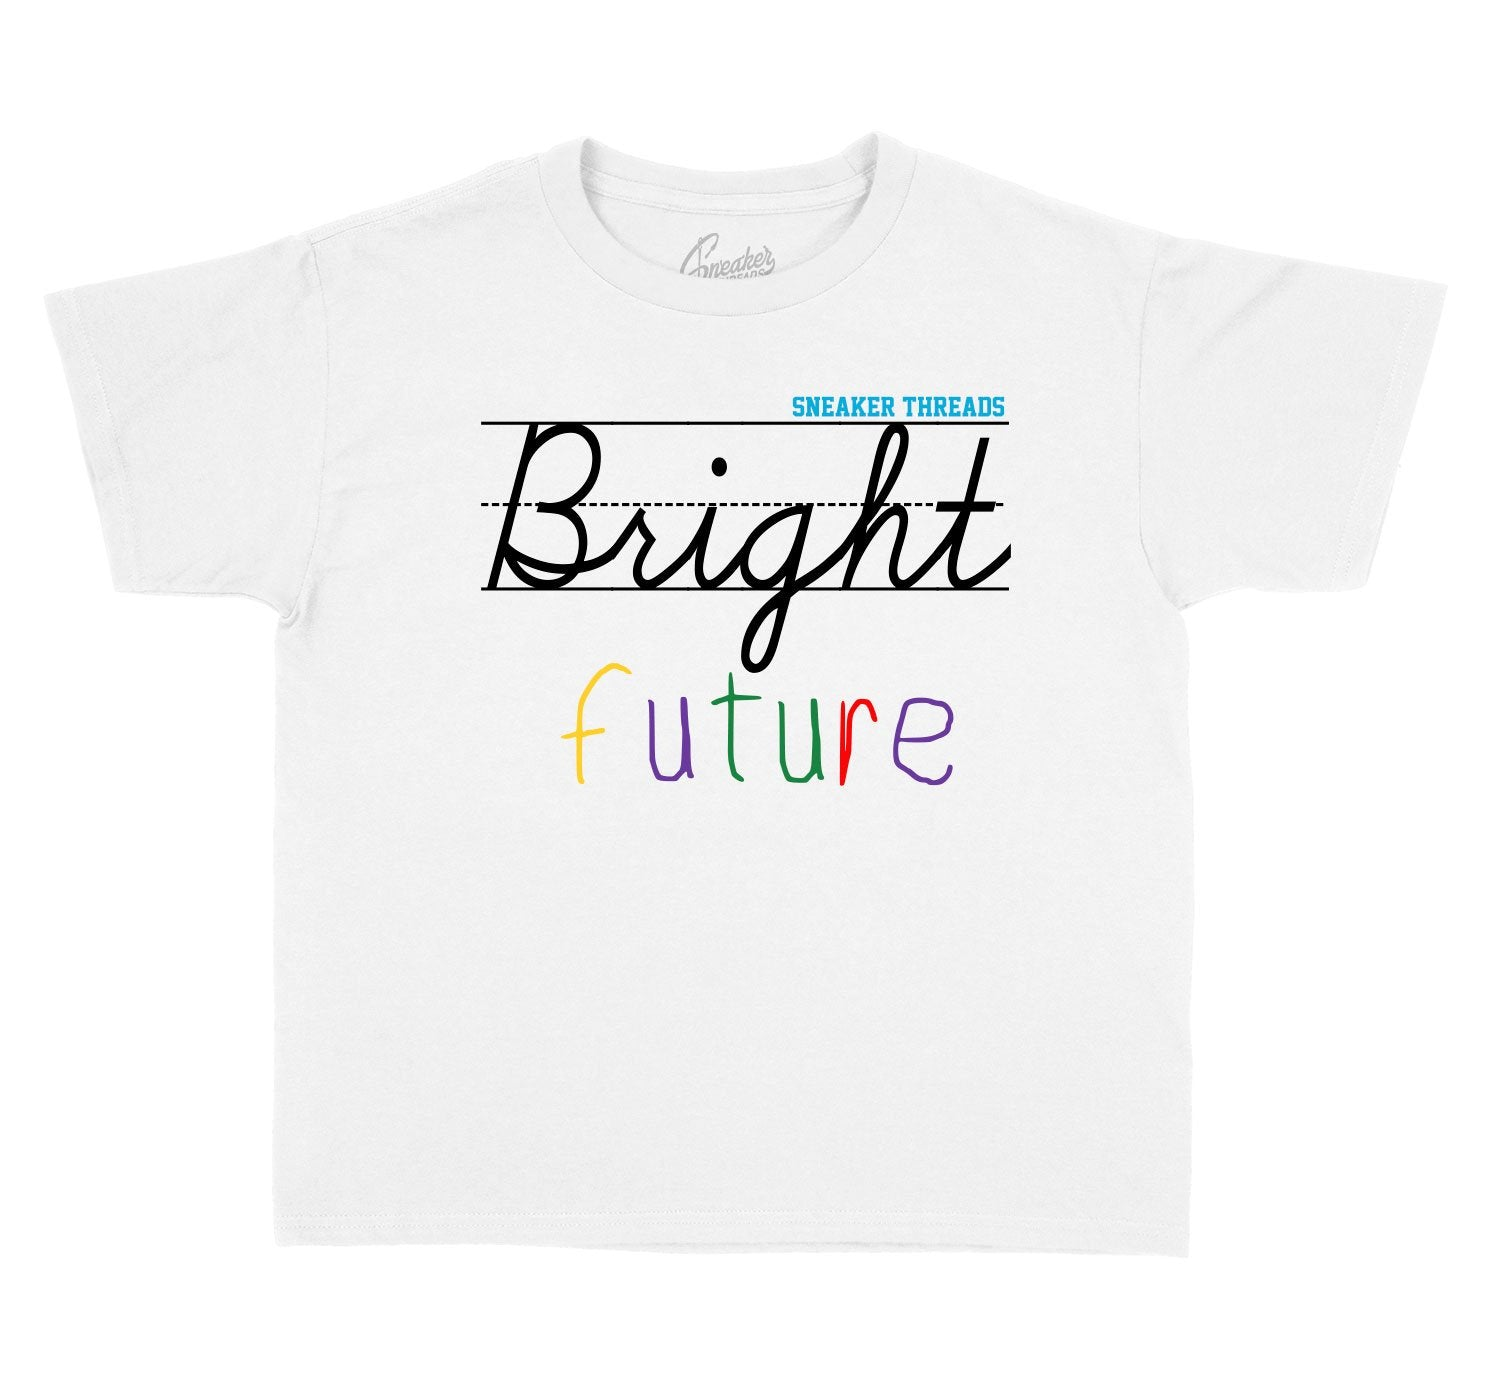 Jordan 13 Bright Future sneaker collections kids tees